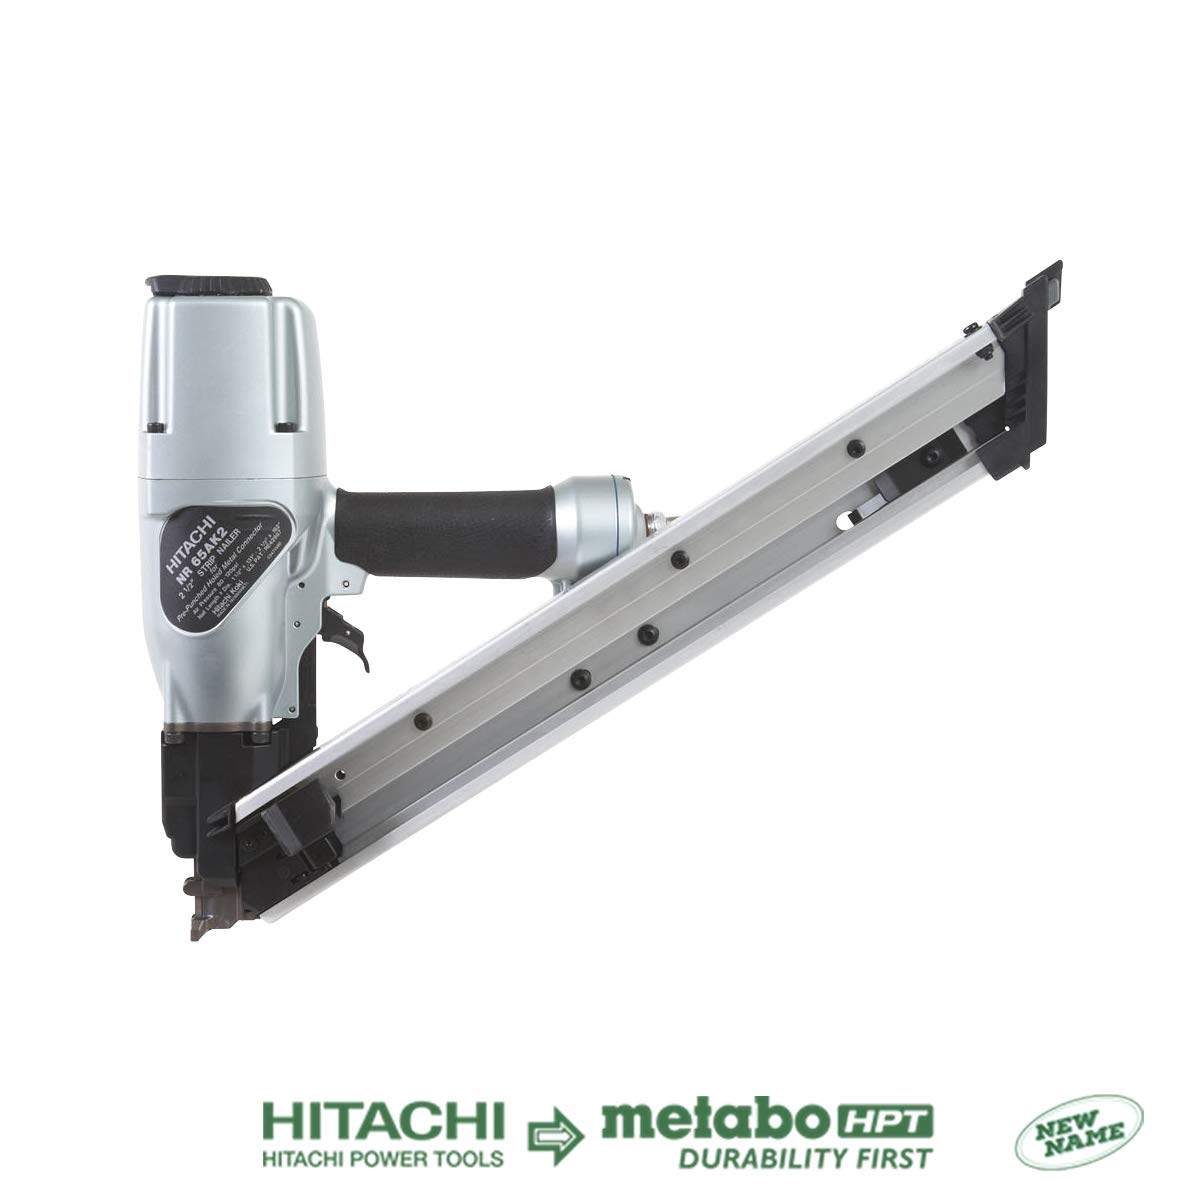 Hitachi NR65AK2 Strap-Tite Fastening System Strip Framing Nailer, 1-1 2 To 2-1 2 Discontinued by the Manufacturer